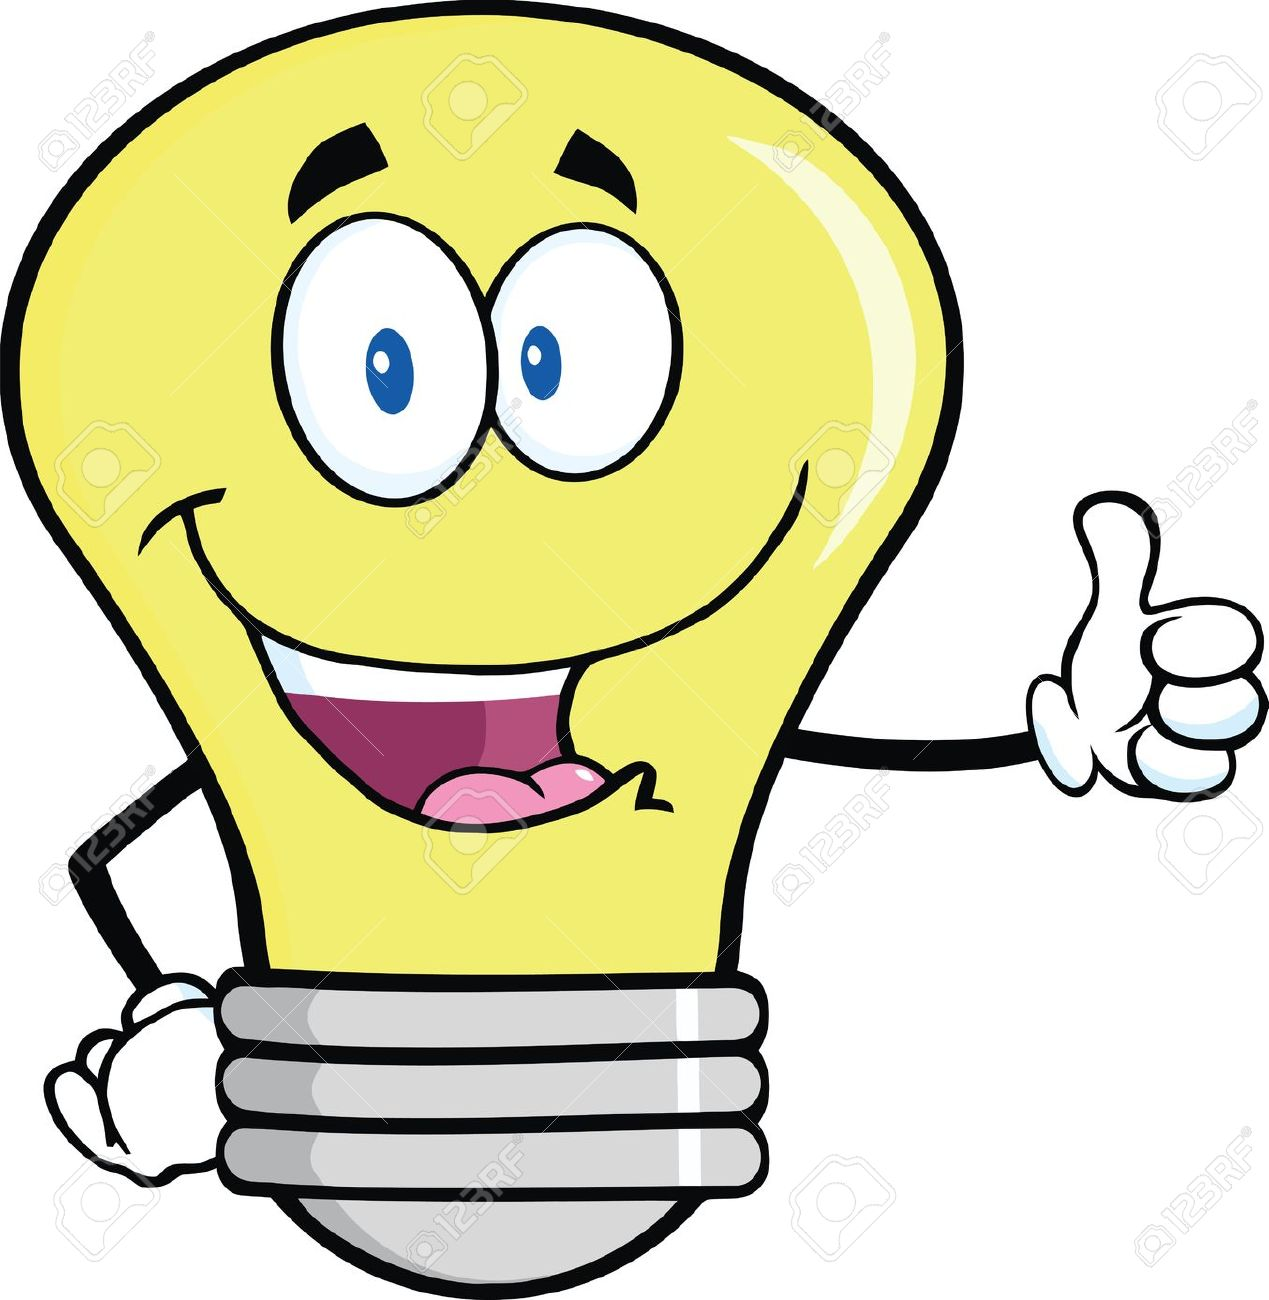 1269x1300 Light Bulb Clipart Cartoon